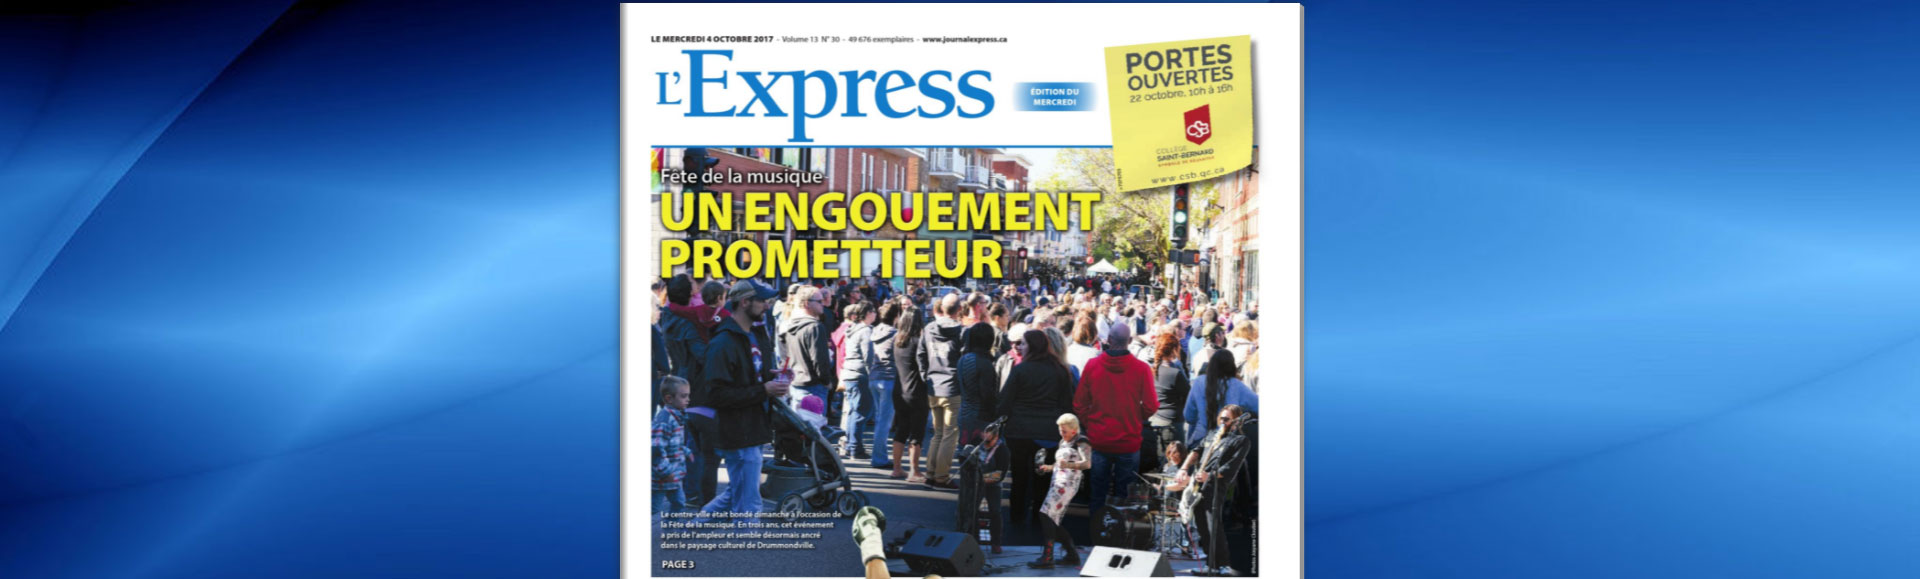 article express